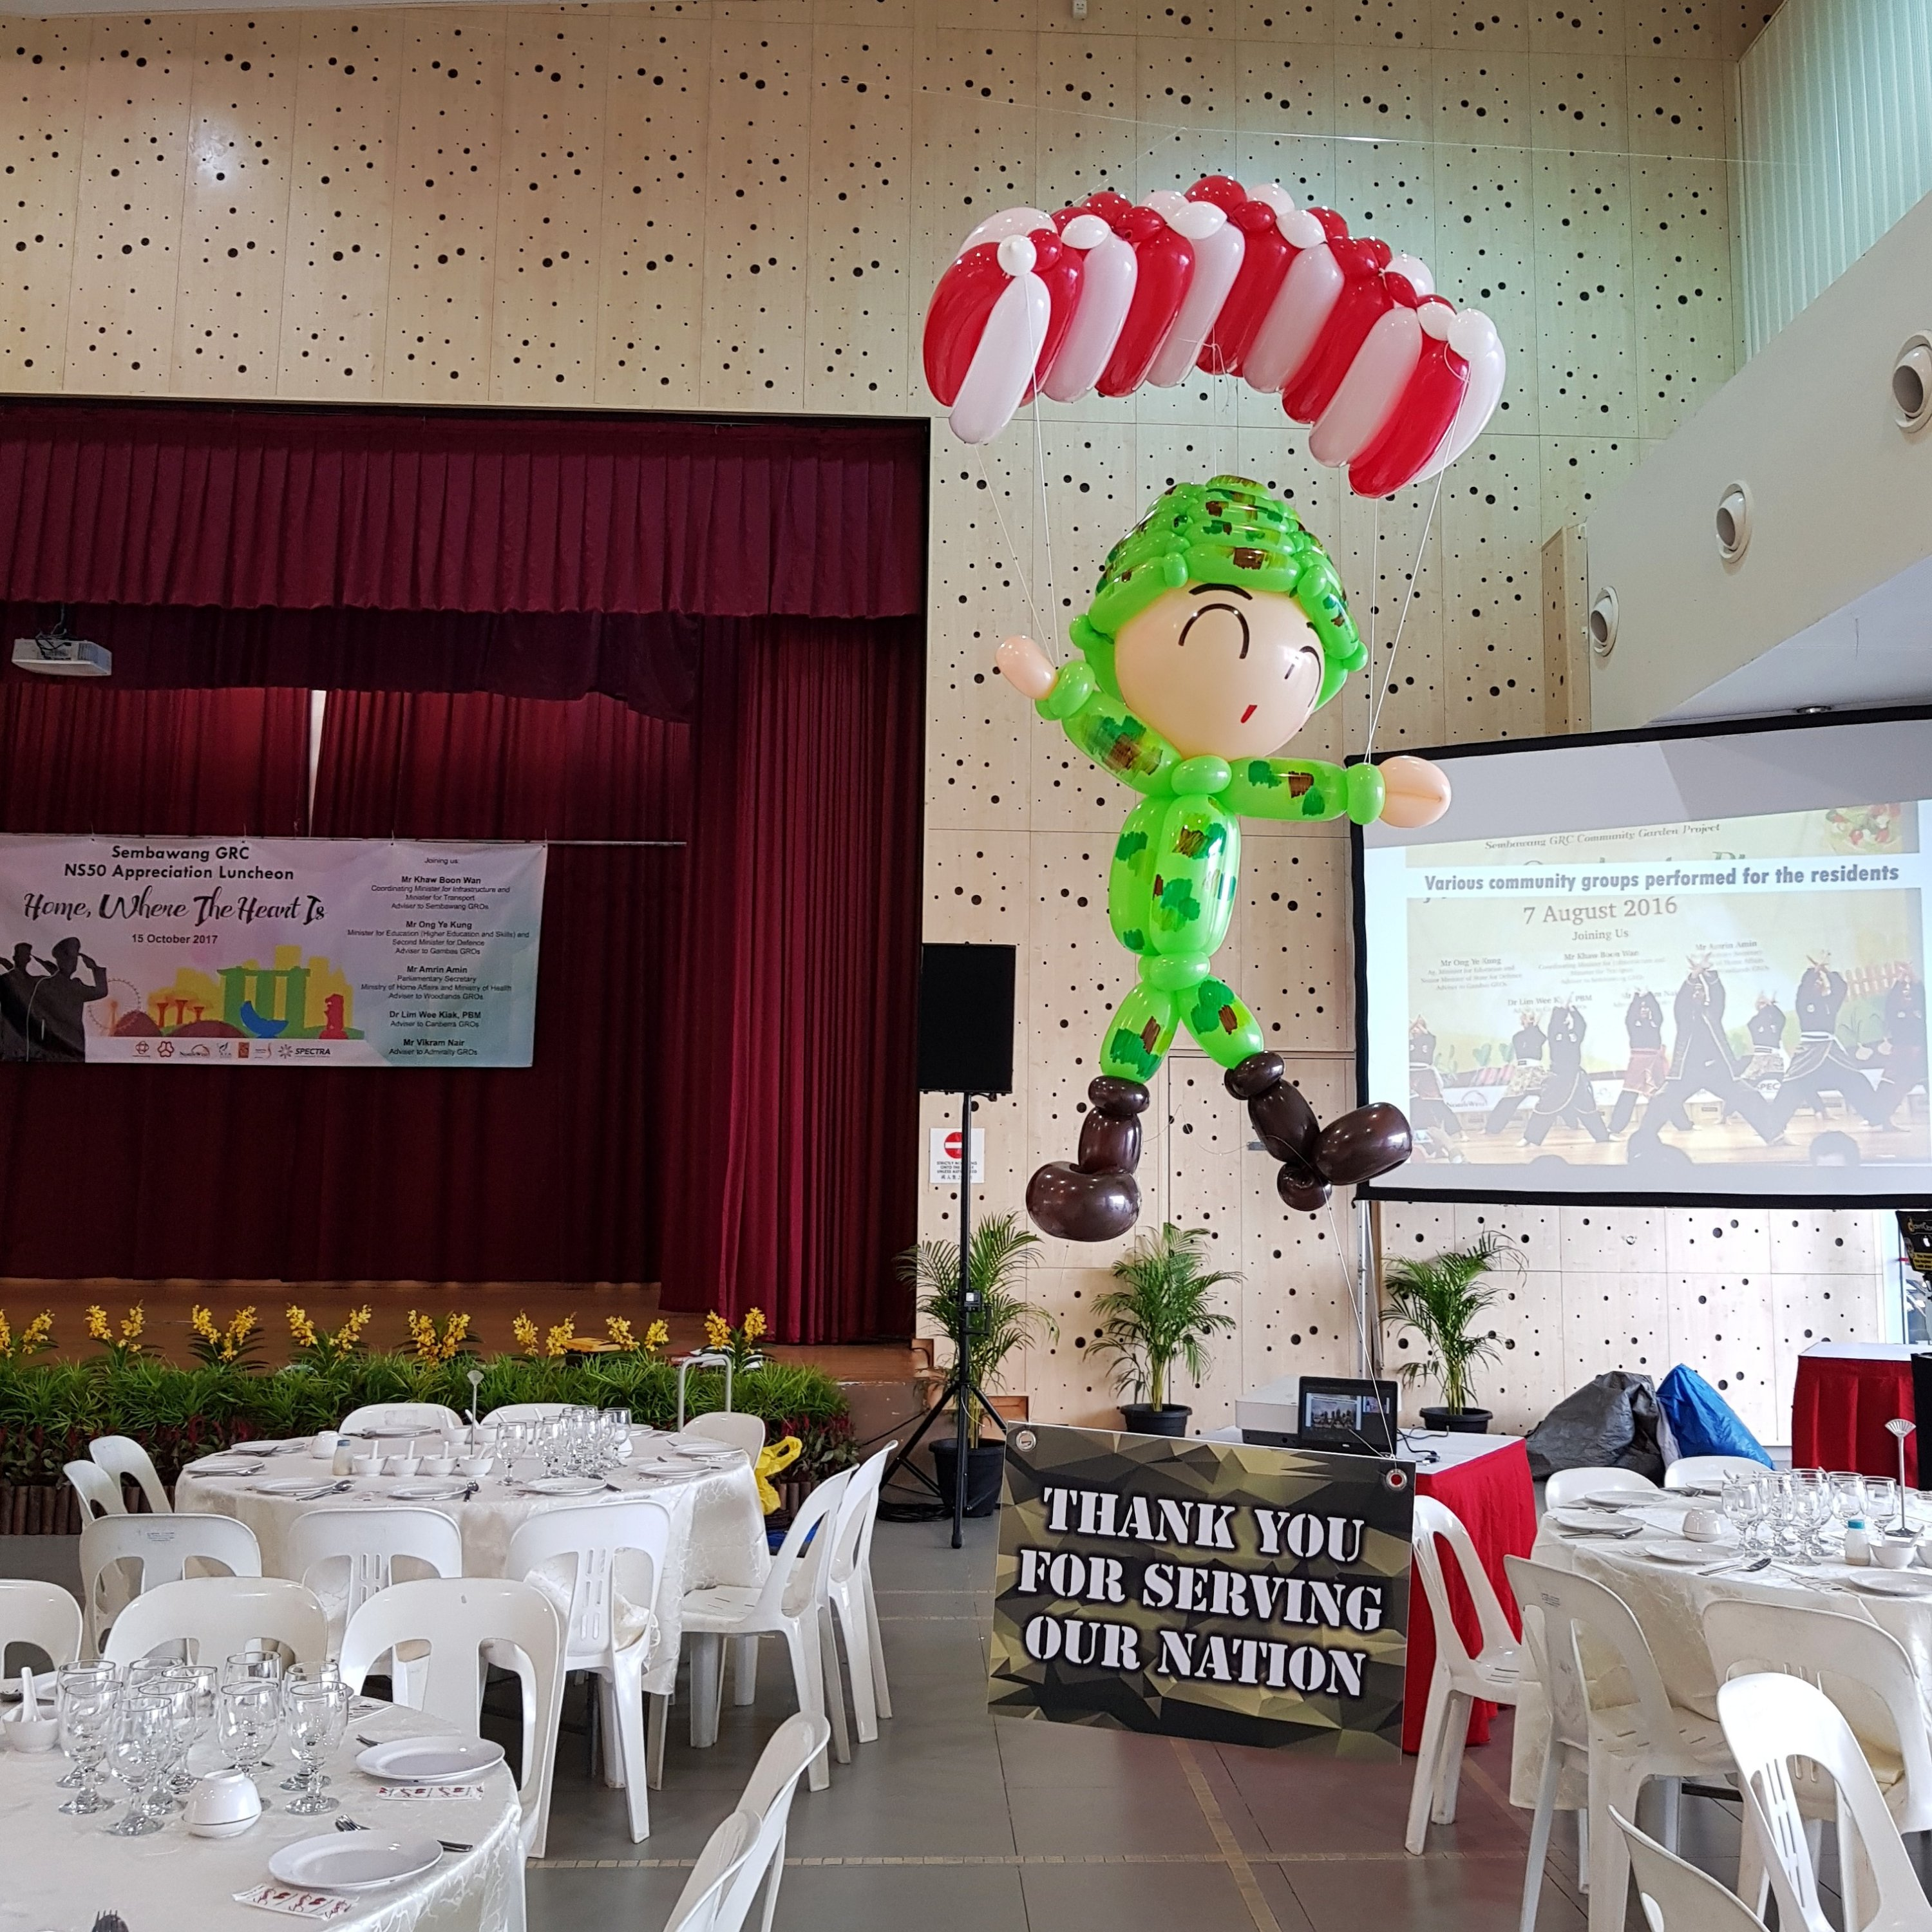 , National Day balloon decorations for NS 50!, Singapore Balloon Decoration Services - Balloon Workshop and Balloon Sculpting